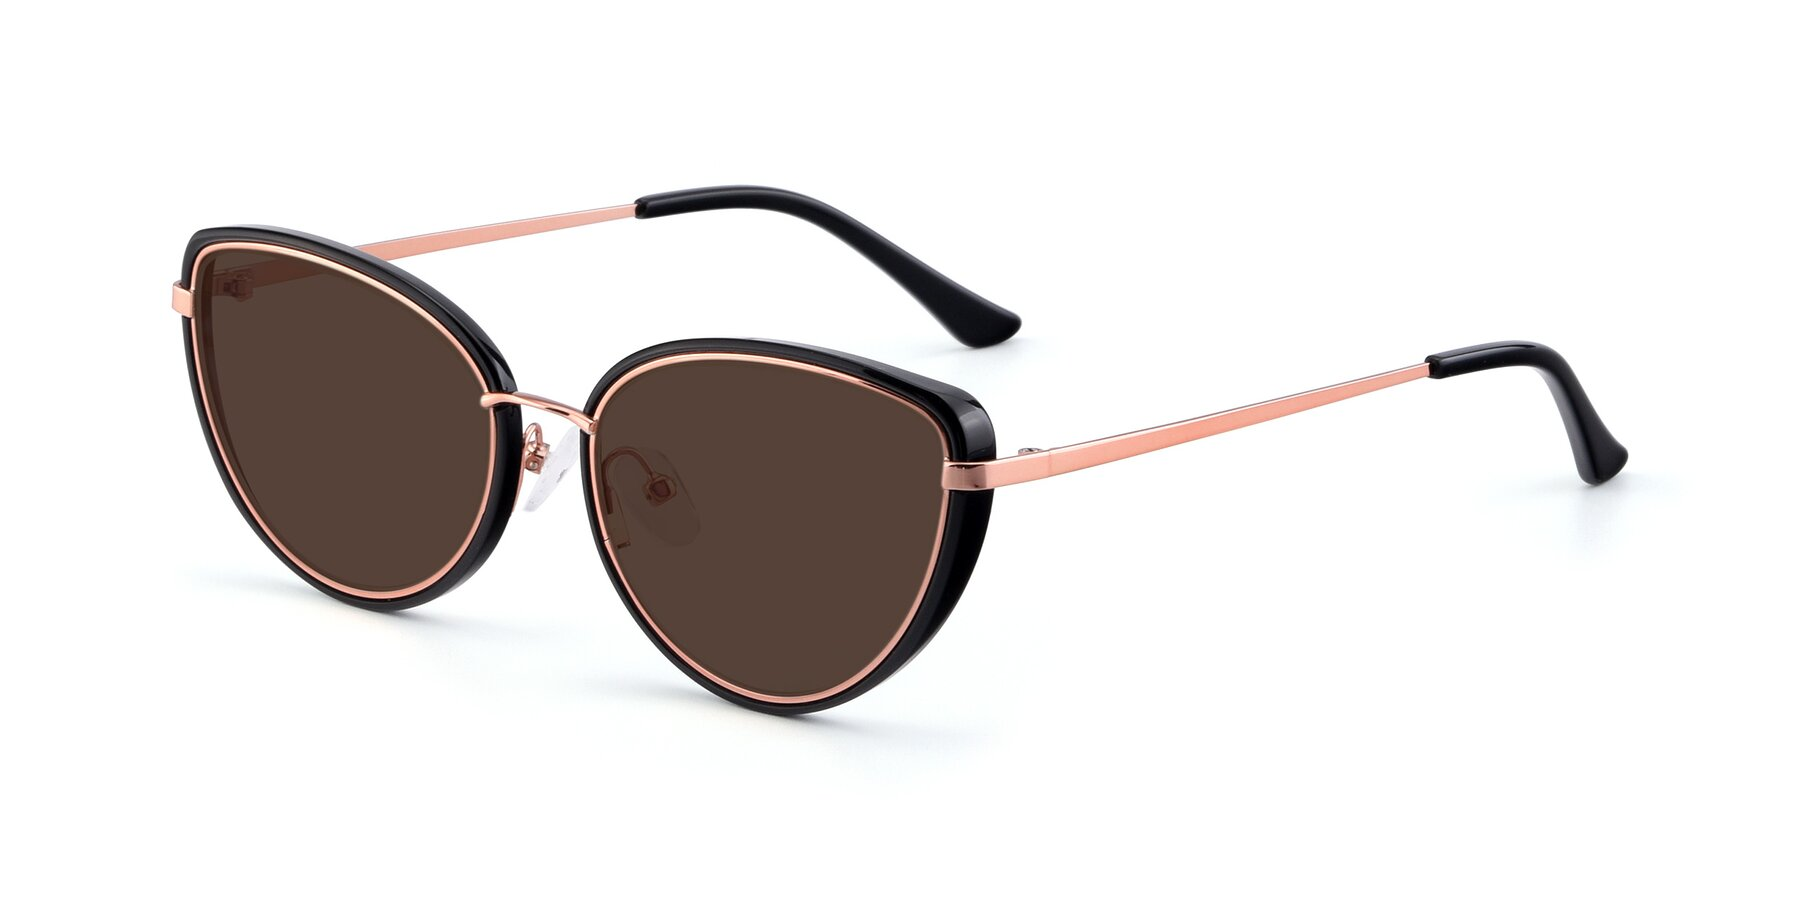 Angle of 17706 in Black-Rose Gold with Brown Tinted Lenses